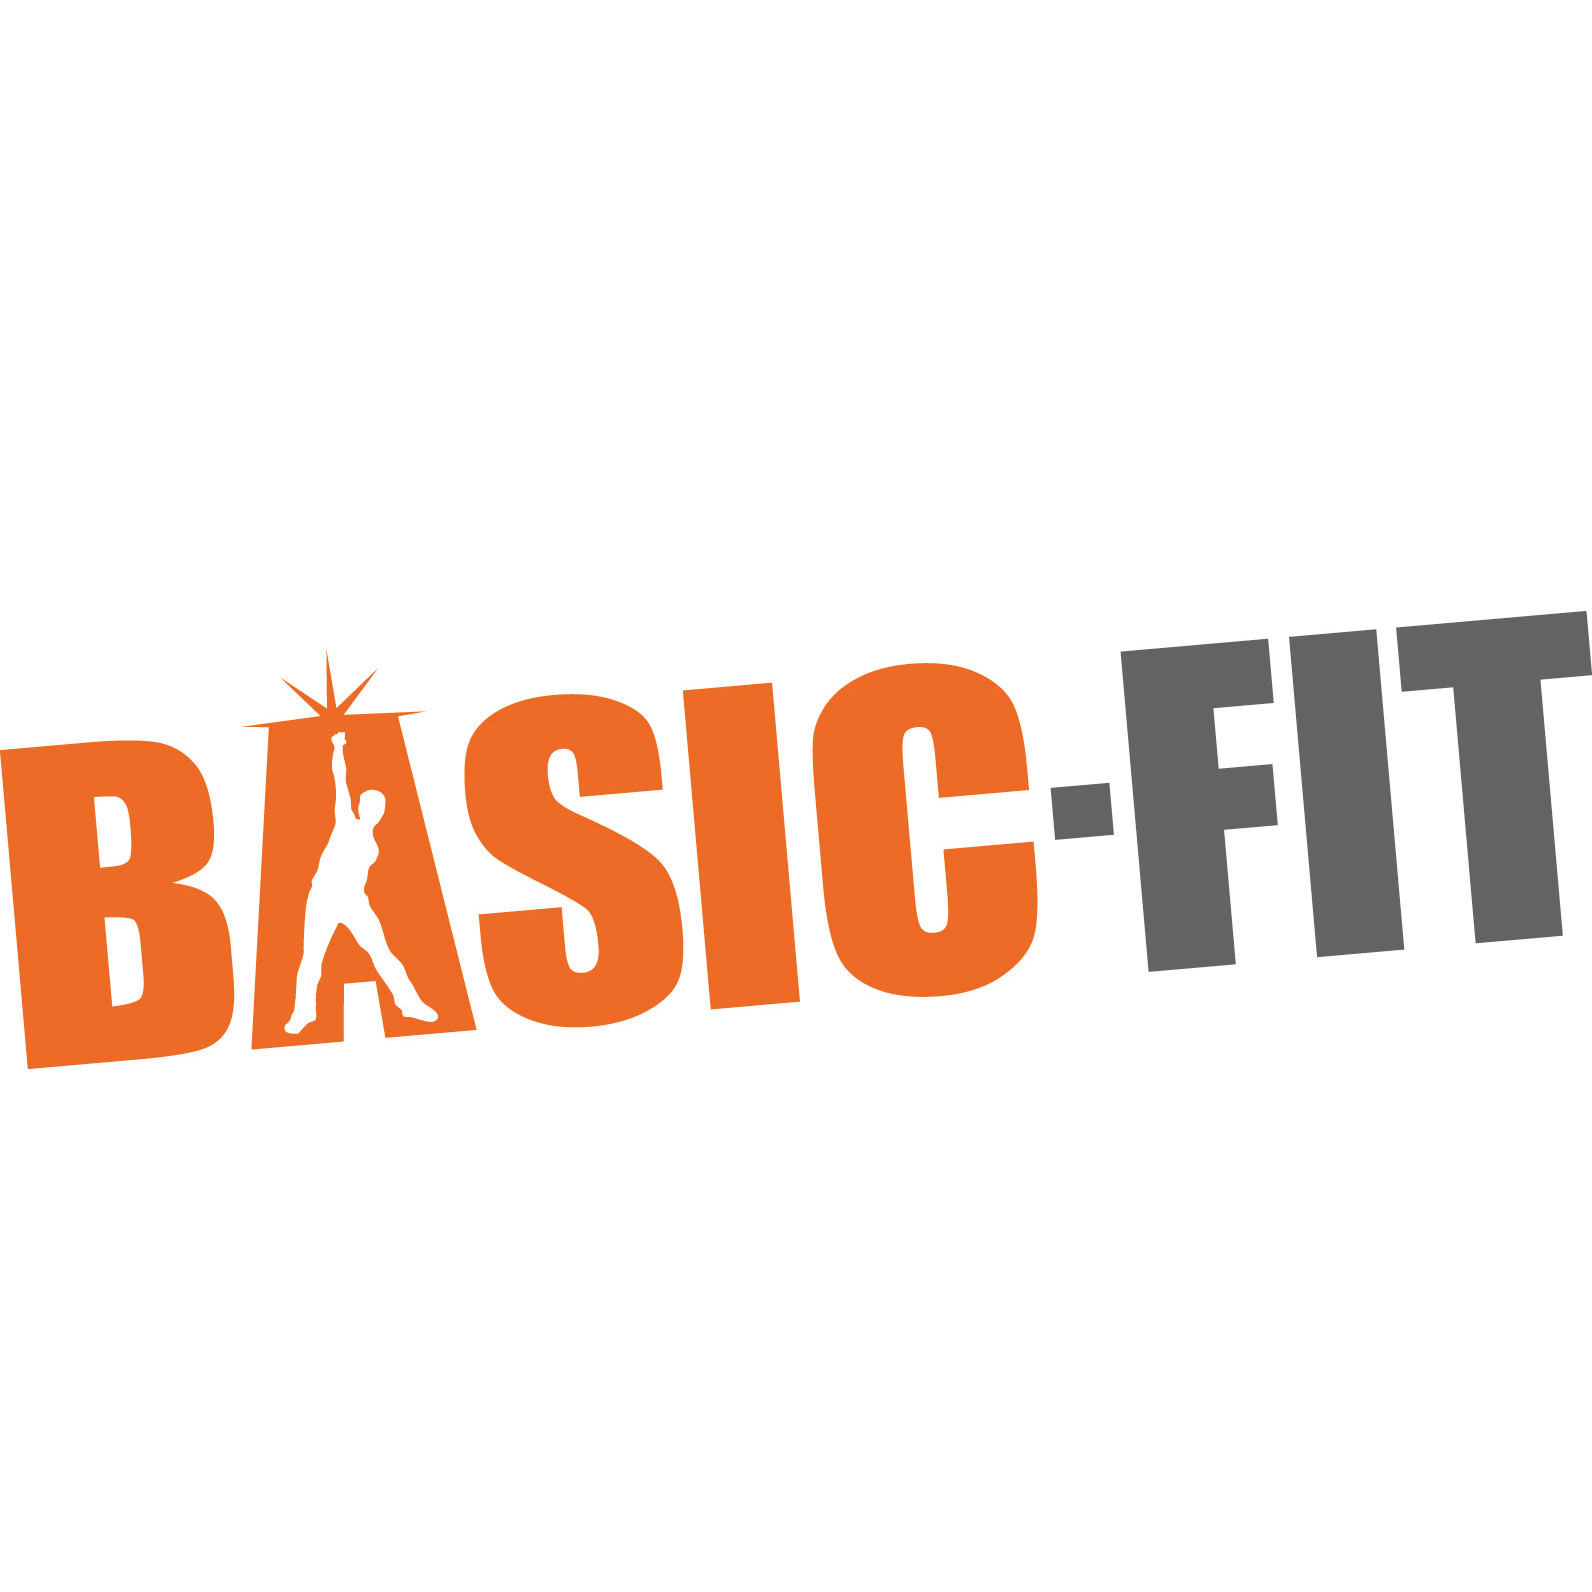 Basic-Fit Brussels Auderghem Hankar - photo